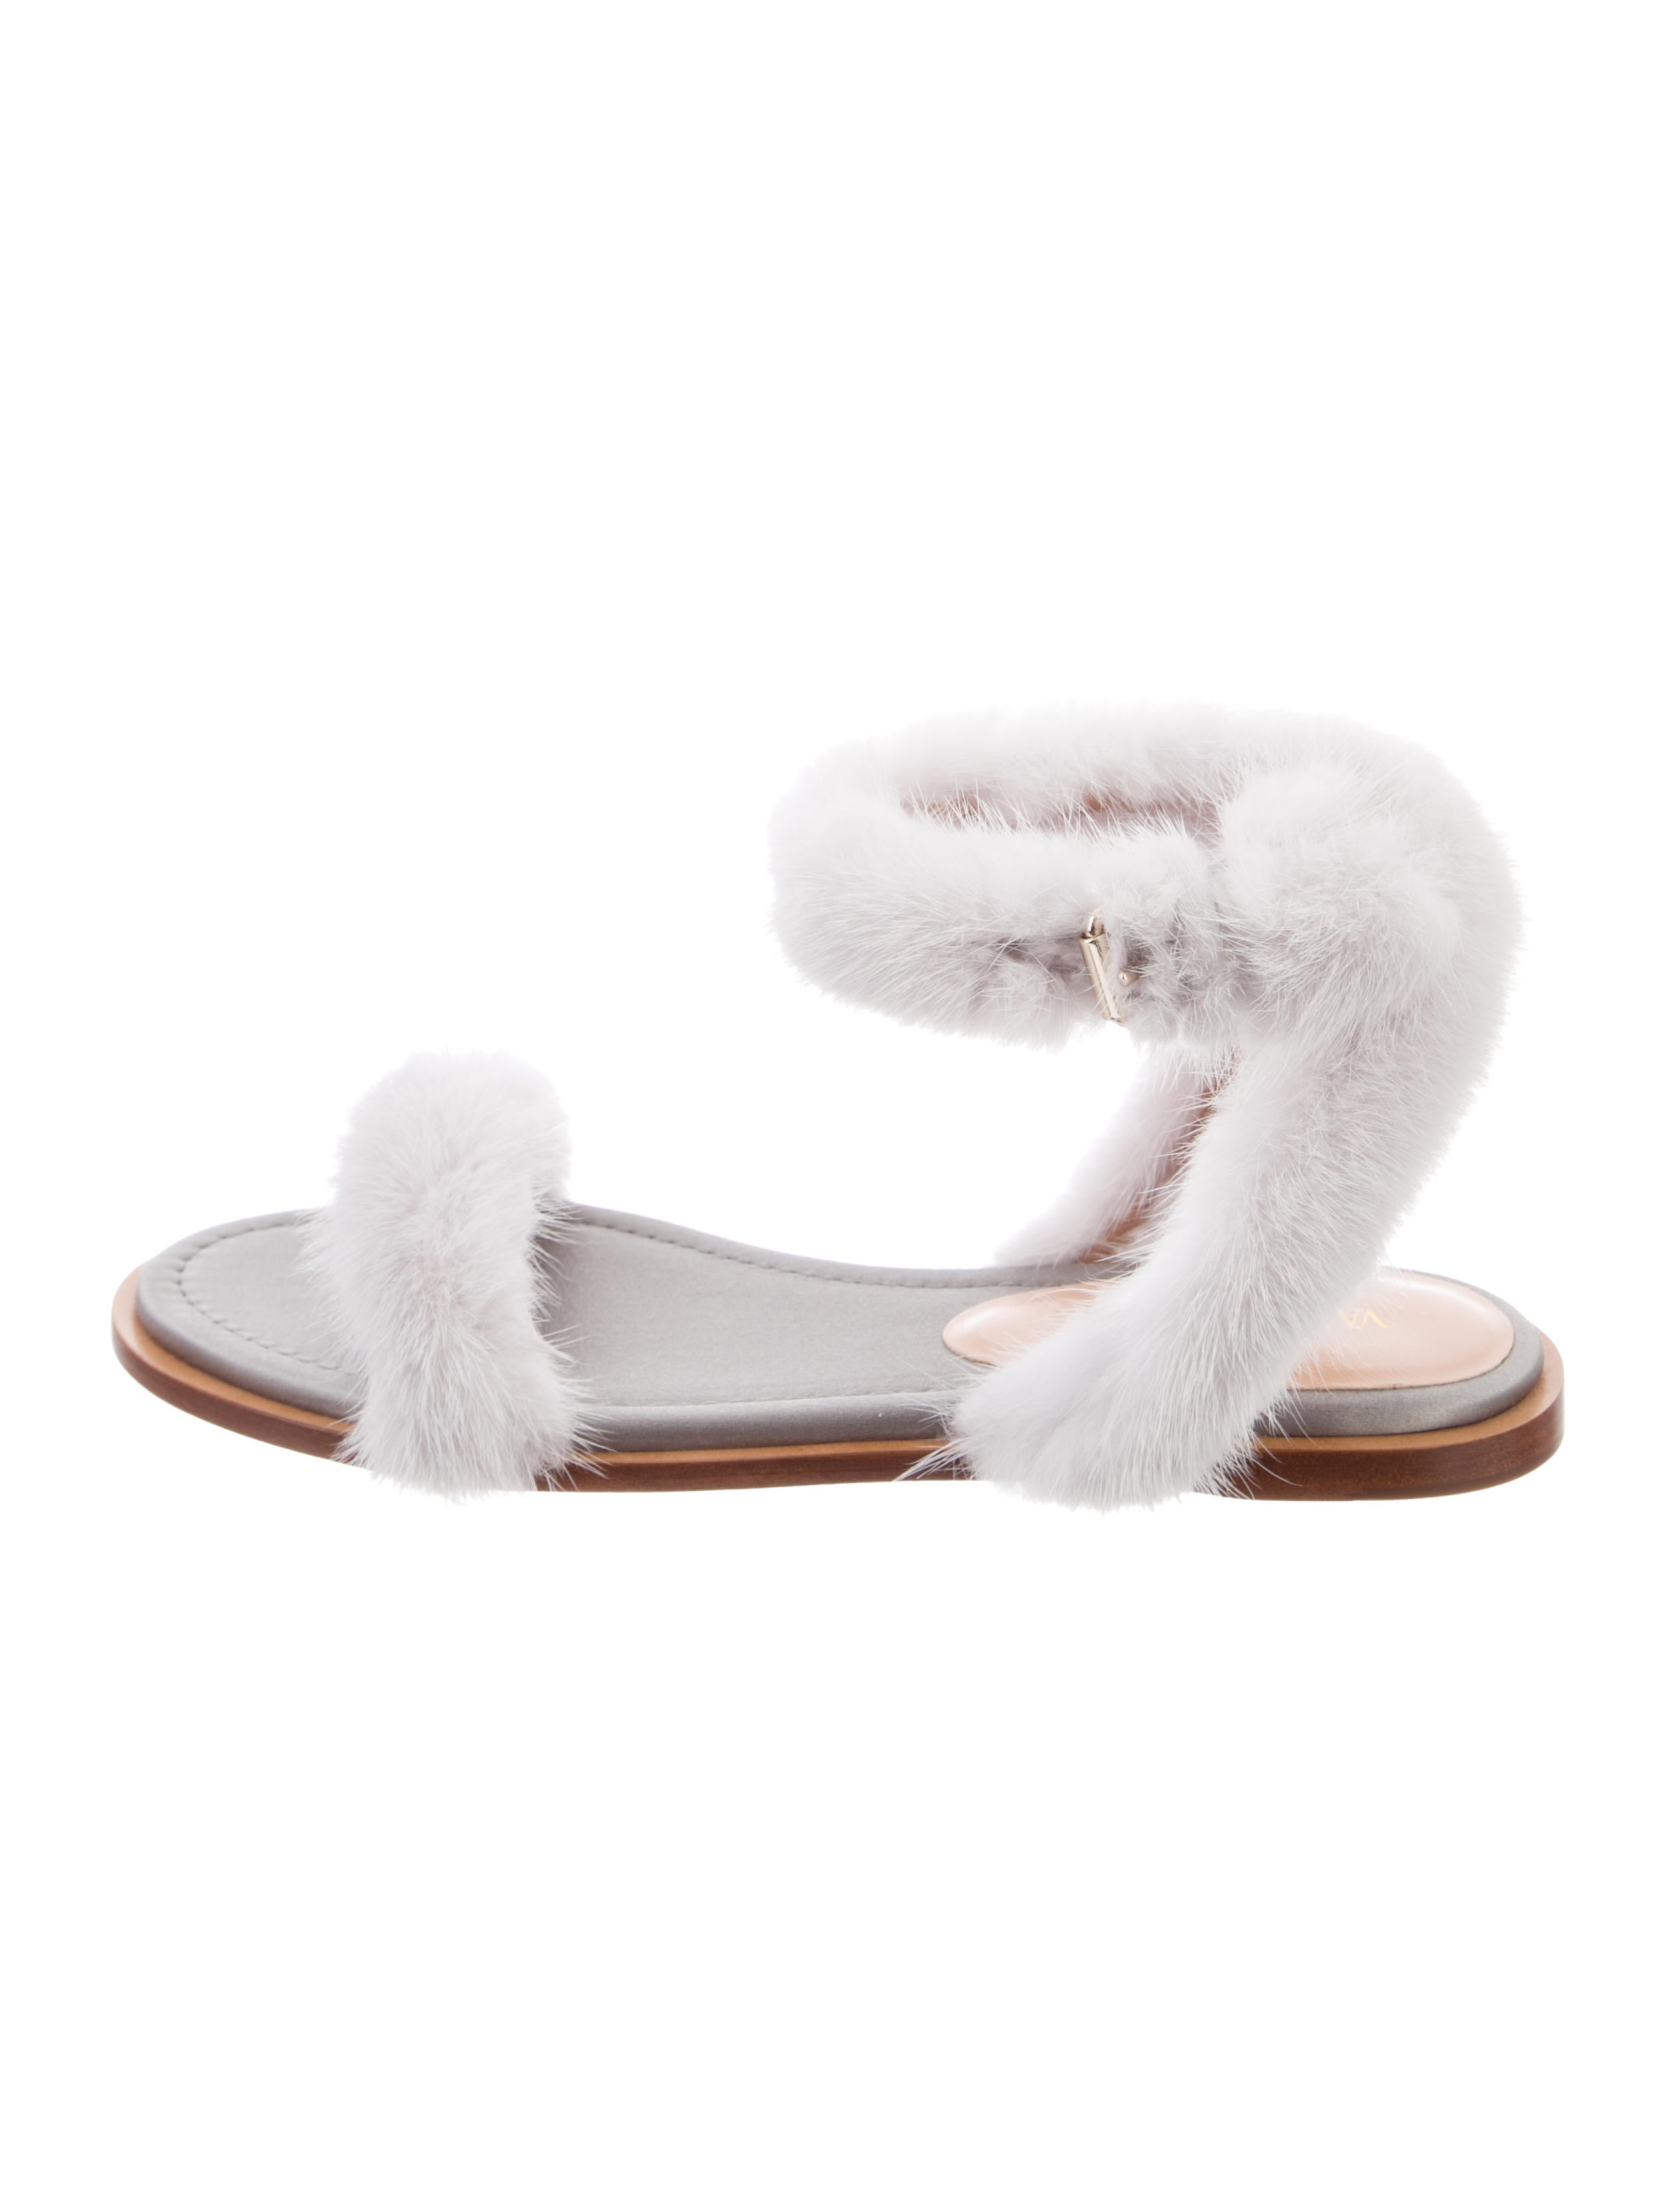 c2289aca5e0e Valentino 2017 Fur Ankle Strap Sandals w  Tags - Shoes - VAL120001 ...